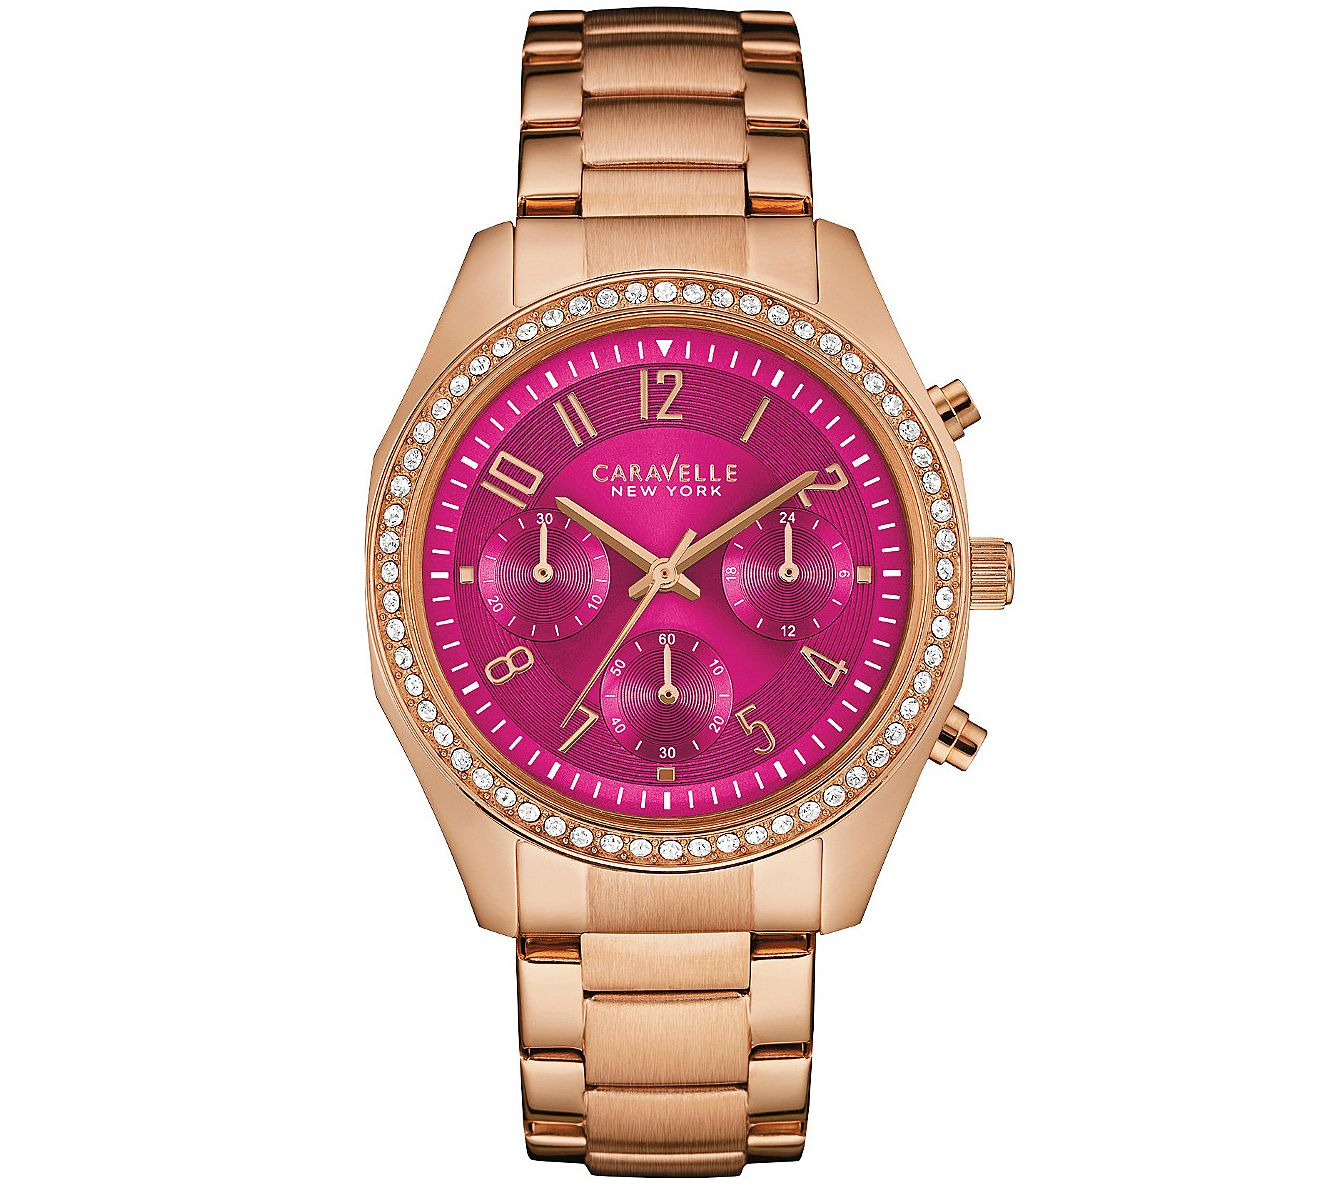 Qvc Bettwäsche Coravelle Caravelle New York Women 39s Watch W Berry Chronograph Dial